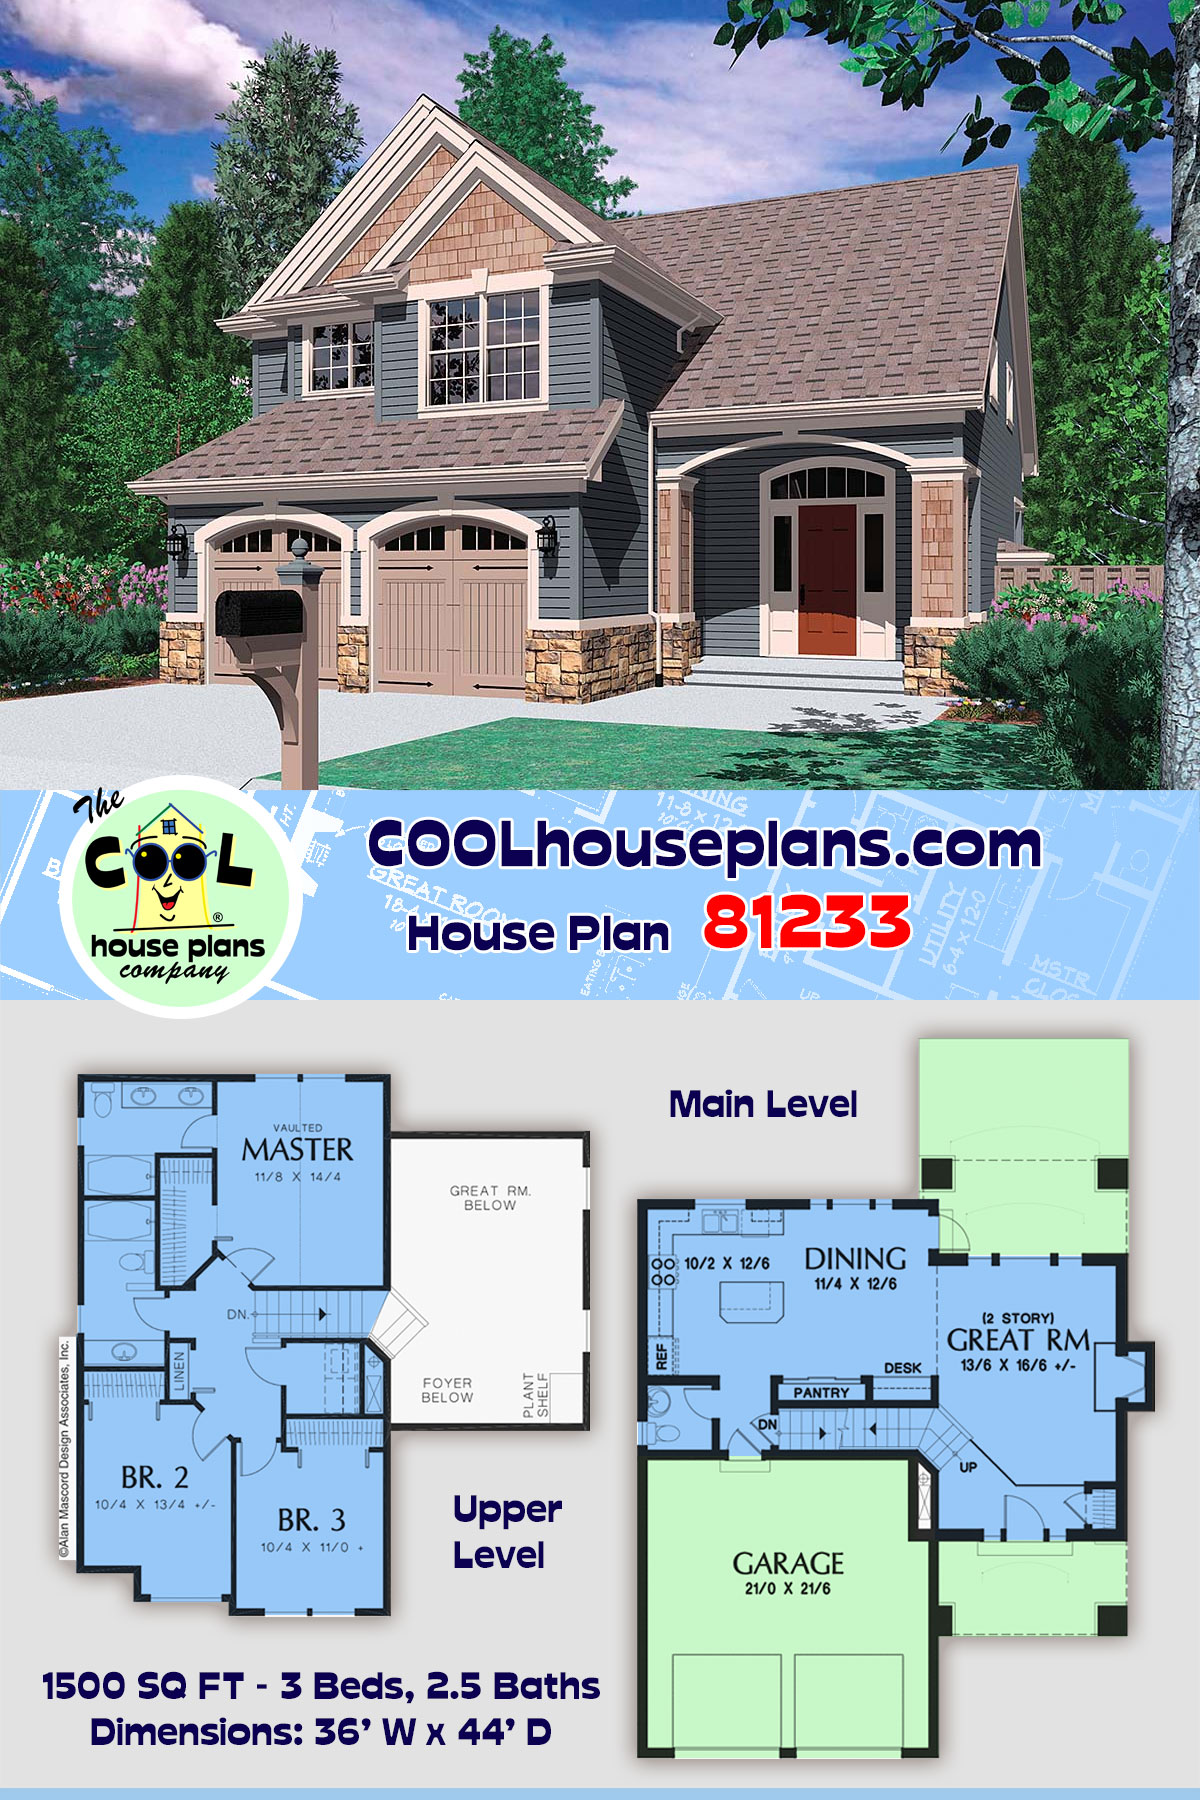 Craftsman, Traditional House Plan 81233 with 3 Beds, 3 Baths, 2 Car Garage